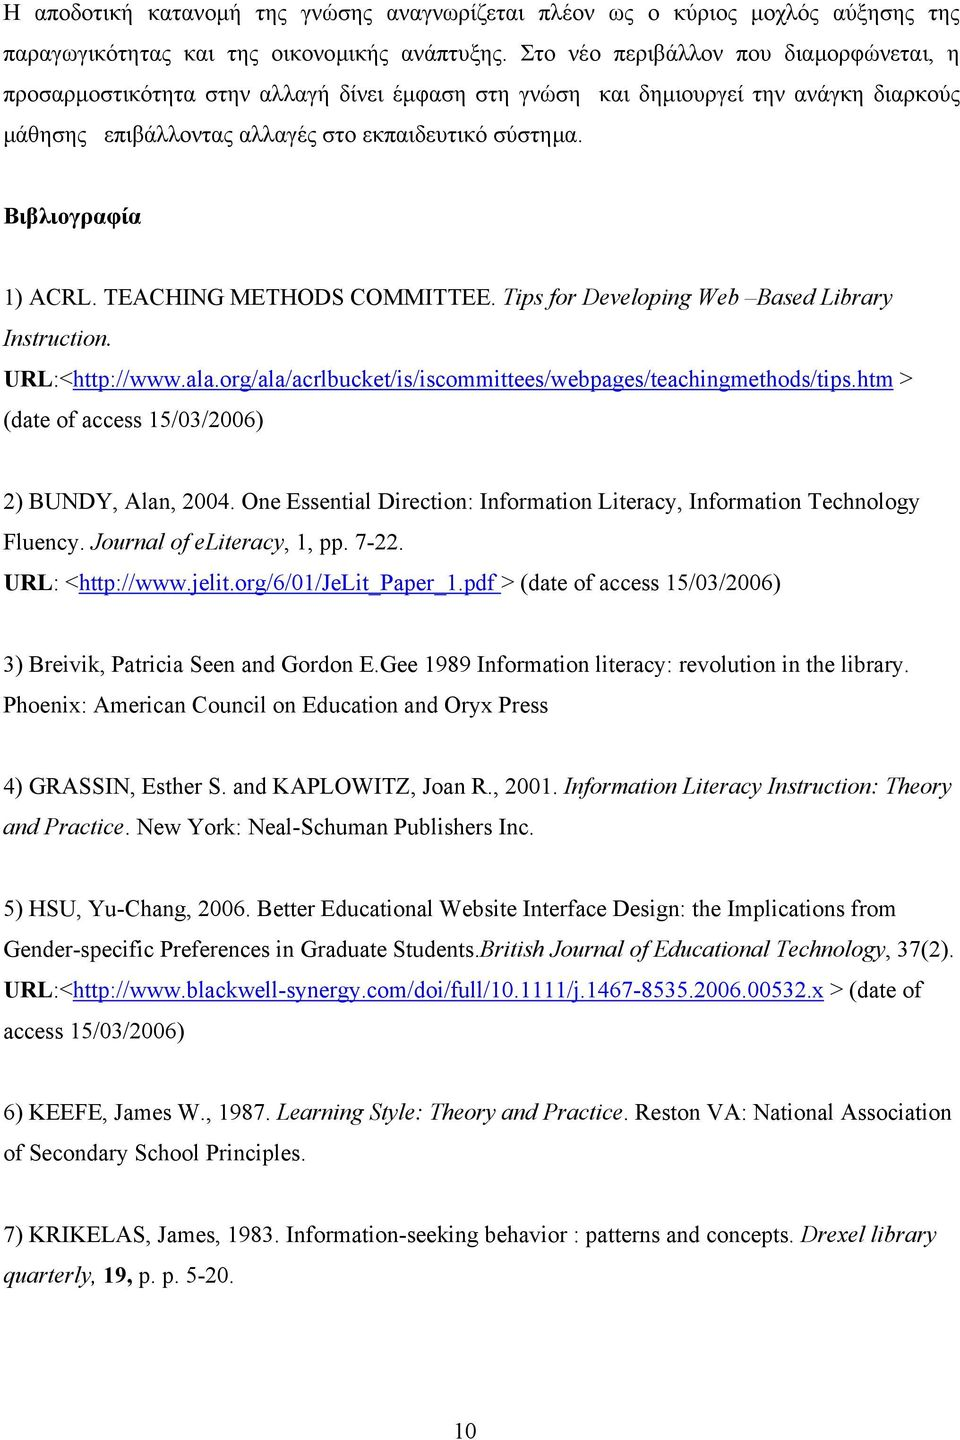 Βιβλιογραφία 1) ACRL. TEACHING METHODS COMMITTEE. Tips for Developing Web Based Library Instruction. URL:<http://www.ala.org/ala/acrlbucket/is/iscommittees/webpages/teachingmethods/tips.